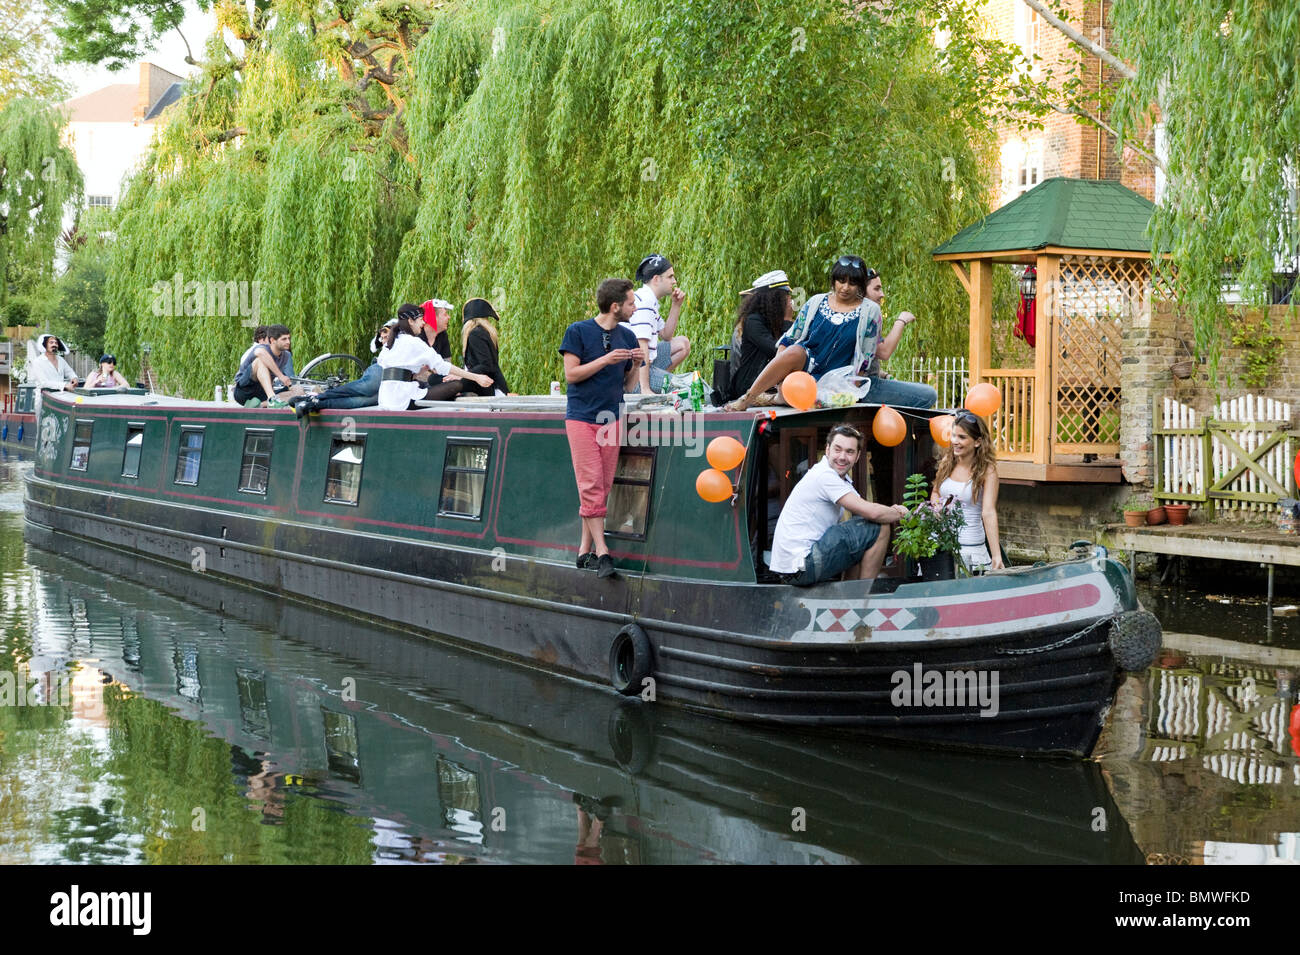 Narrowboat travelling down the Regent's Canal in Camden, London, England, UK - Stock Image